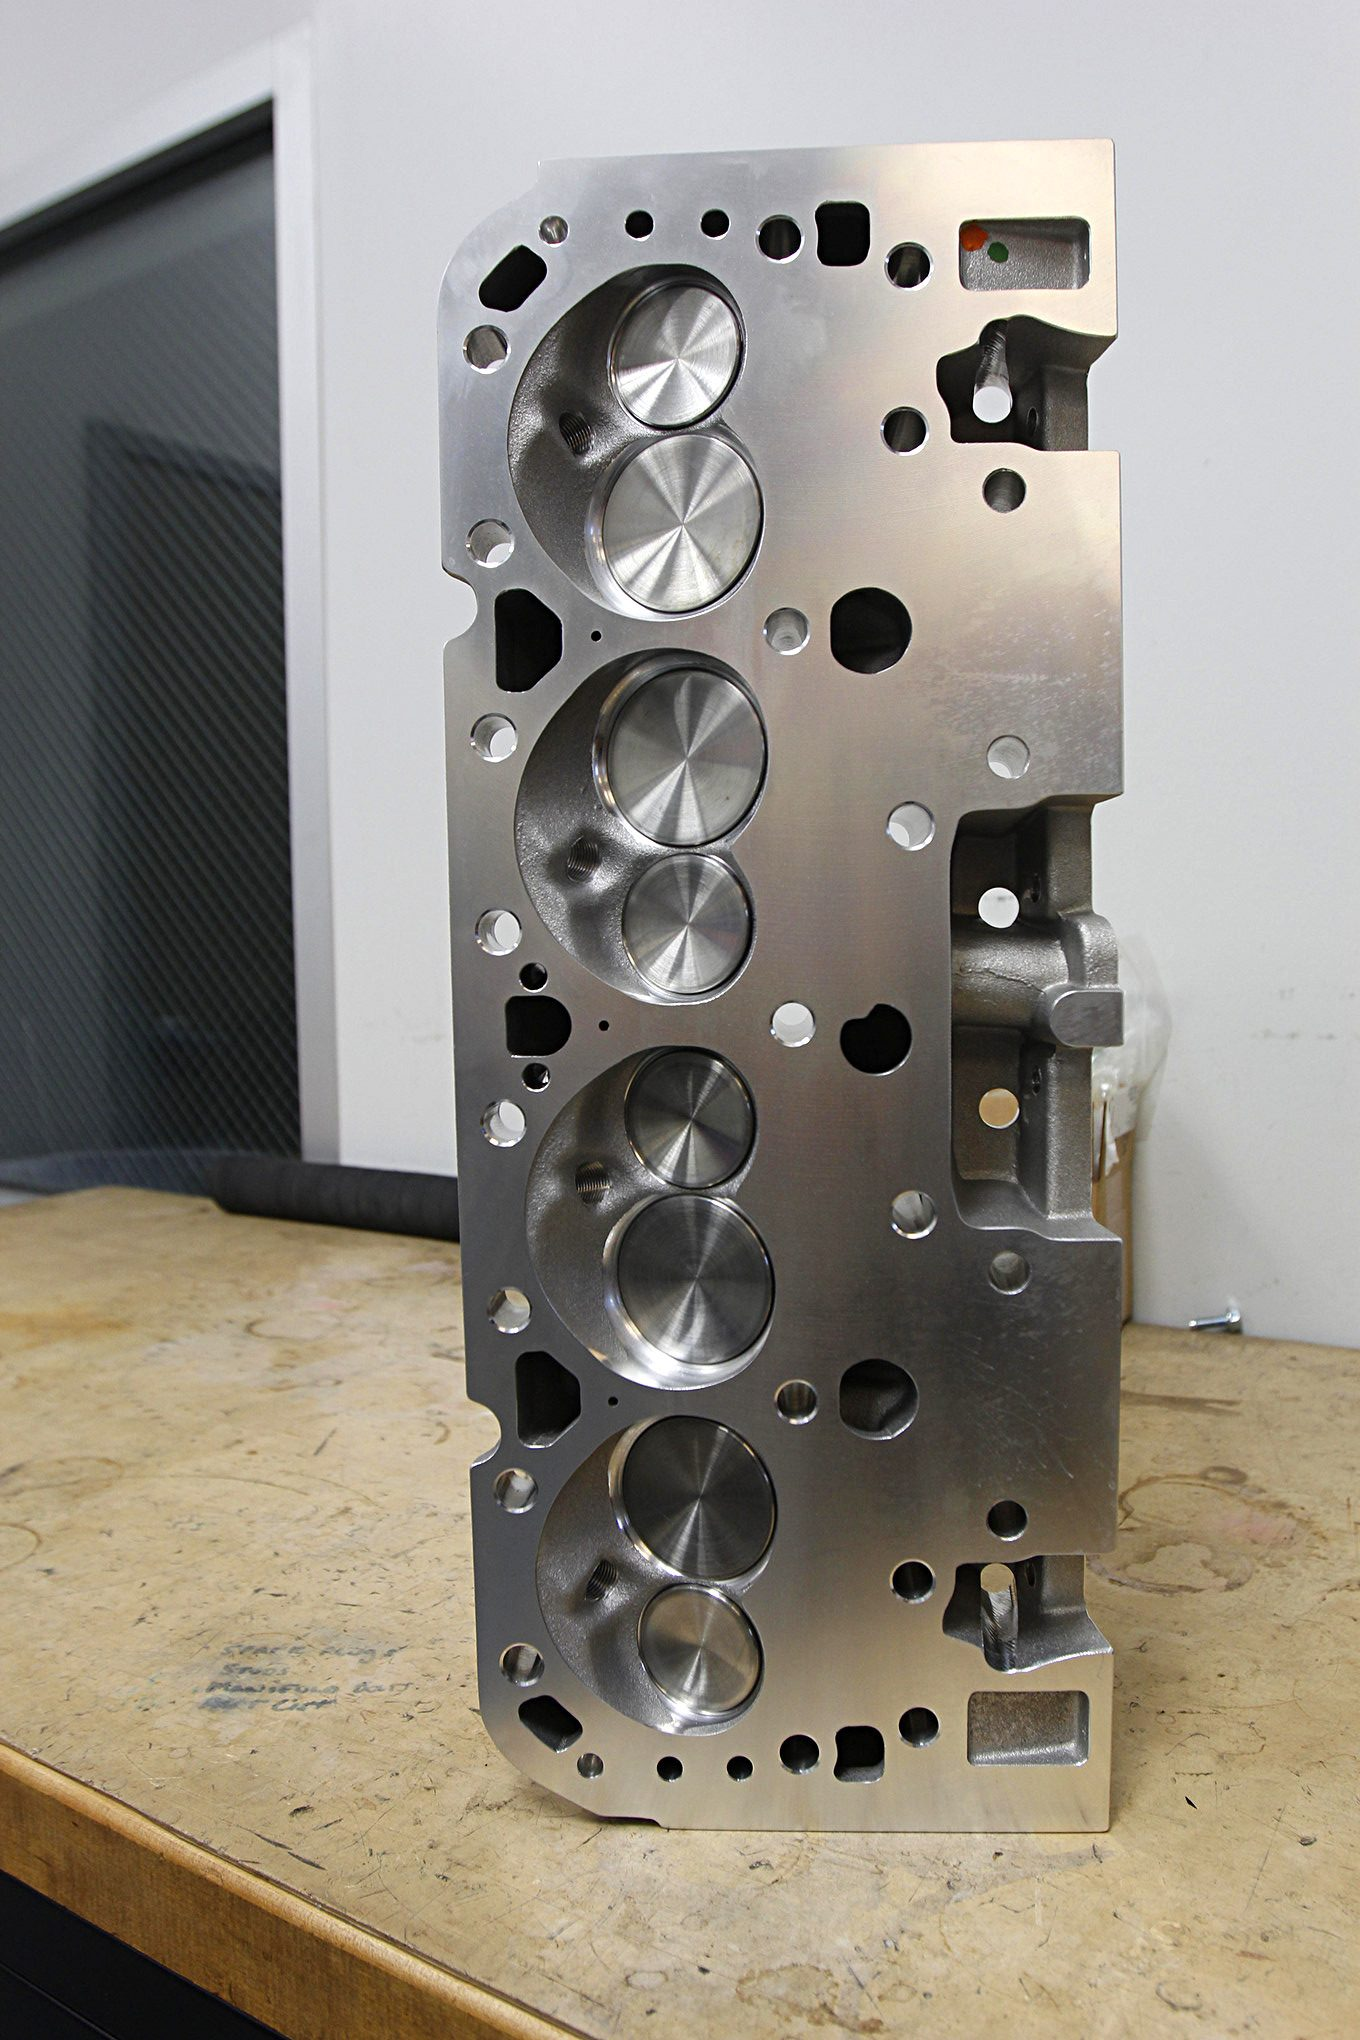 Trick Flow contributed a set of its as-cast, 195cc cylinder heads. With 65cc combustion chambers and flat-top pistons, the compression ratio will be a pump-gas-friendly 10.0:1.